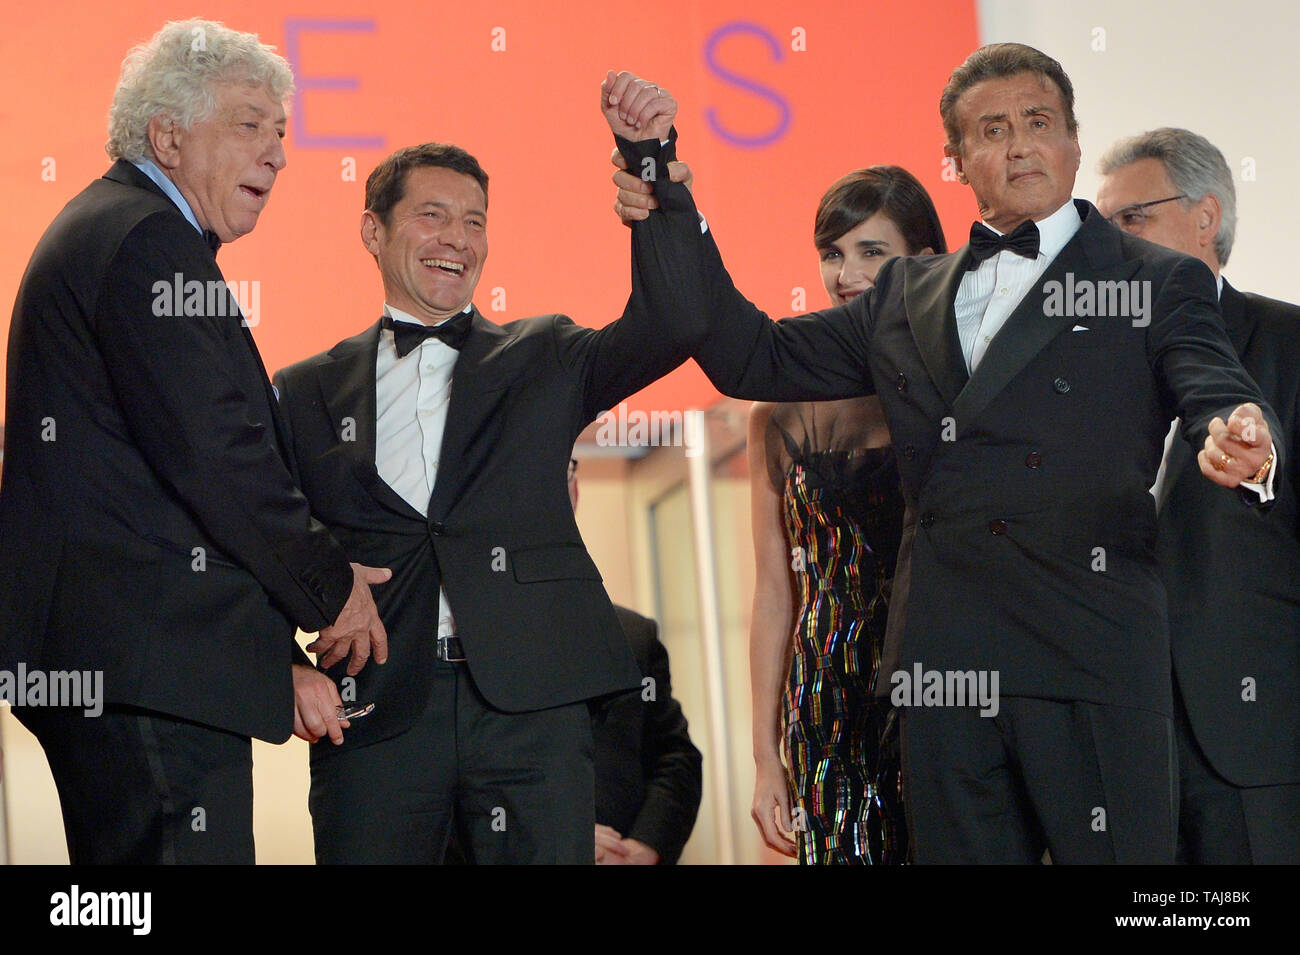 Avi Lerner (l-r), producer, David Lisnard, the Mayor of Cannes, and Sylvester Stallone attend the screening of 'Rambo V: Last Blood' during the 72nd annual Cannes Film Festival at Palais des Festivals. | usage worldwide - Stock Image